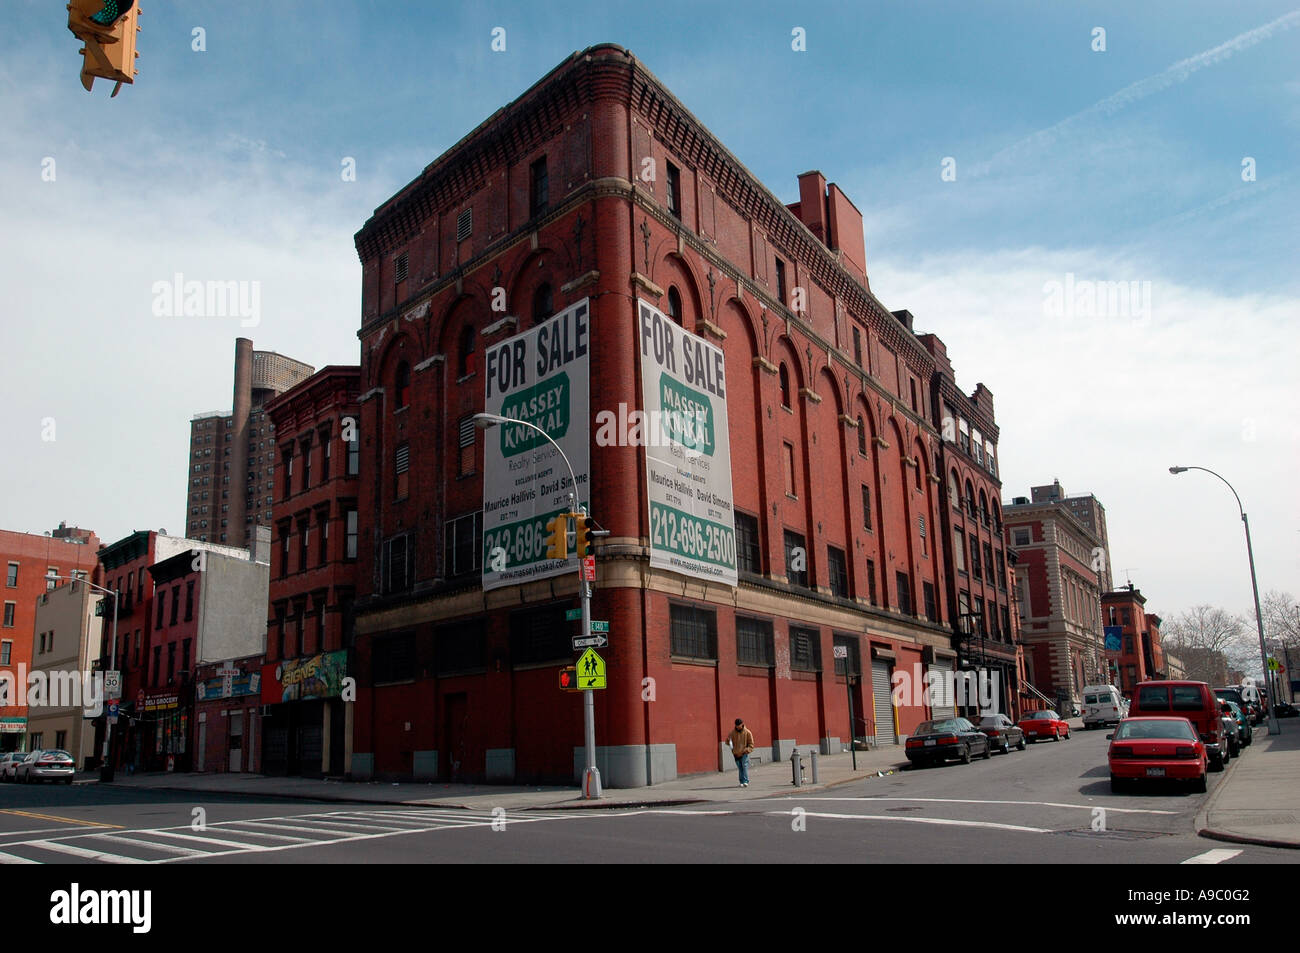 Brick warehouse for sale in the Mott Haven neighborhood of the Bronx in New York City - Stock Image